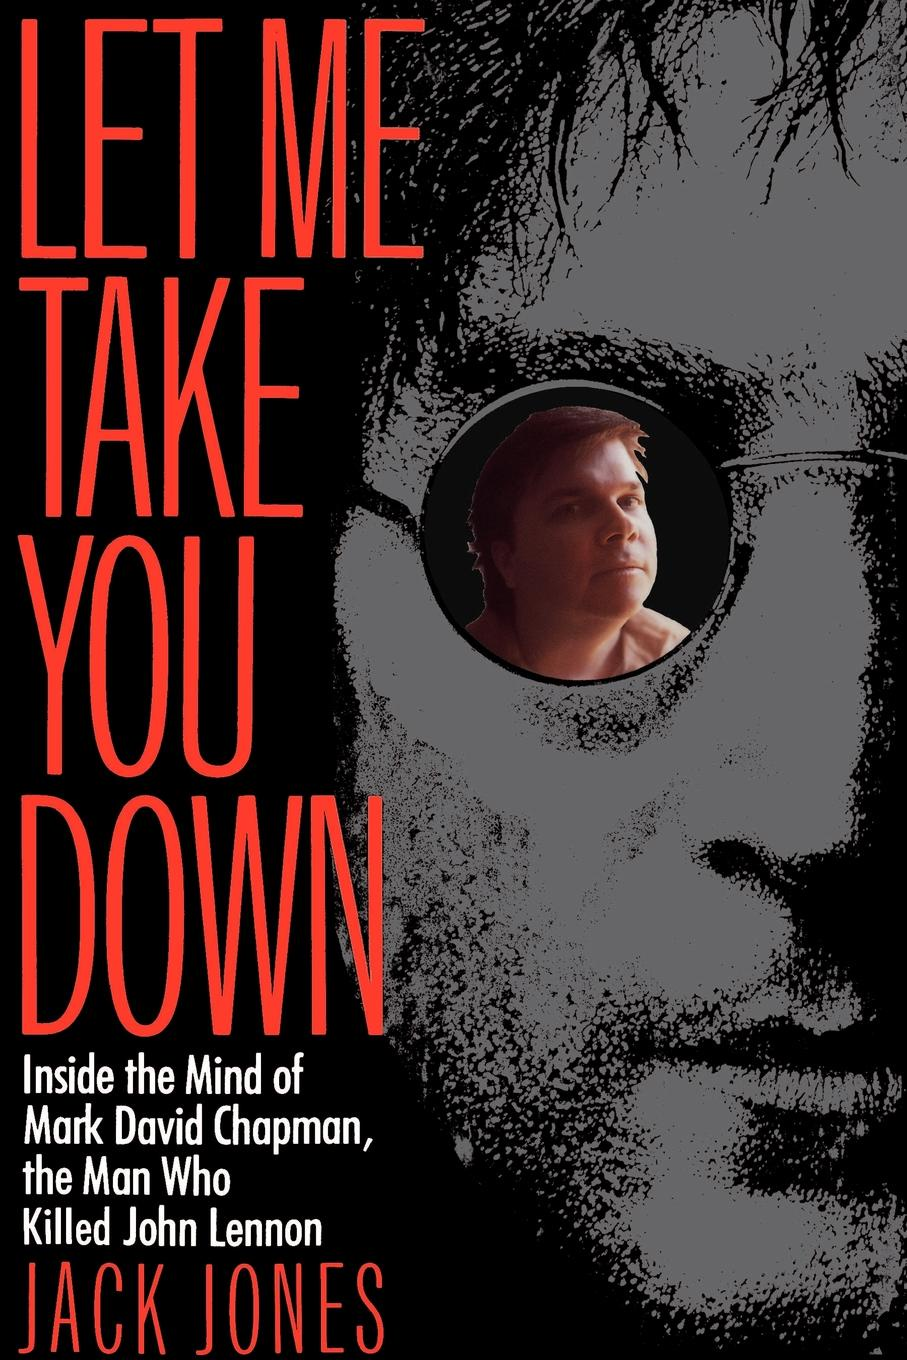 лучшая цена Jack Jones Let Me Take You Down. Inside the Mind of Mark David Chapman, the Man Who Killed John Lennon